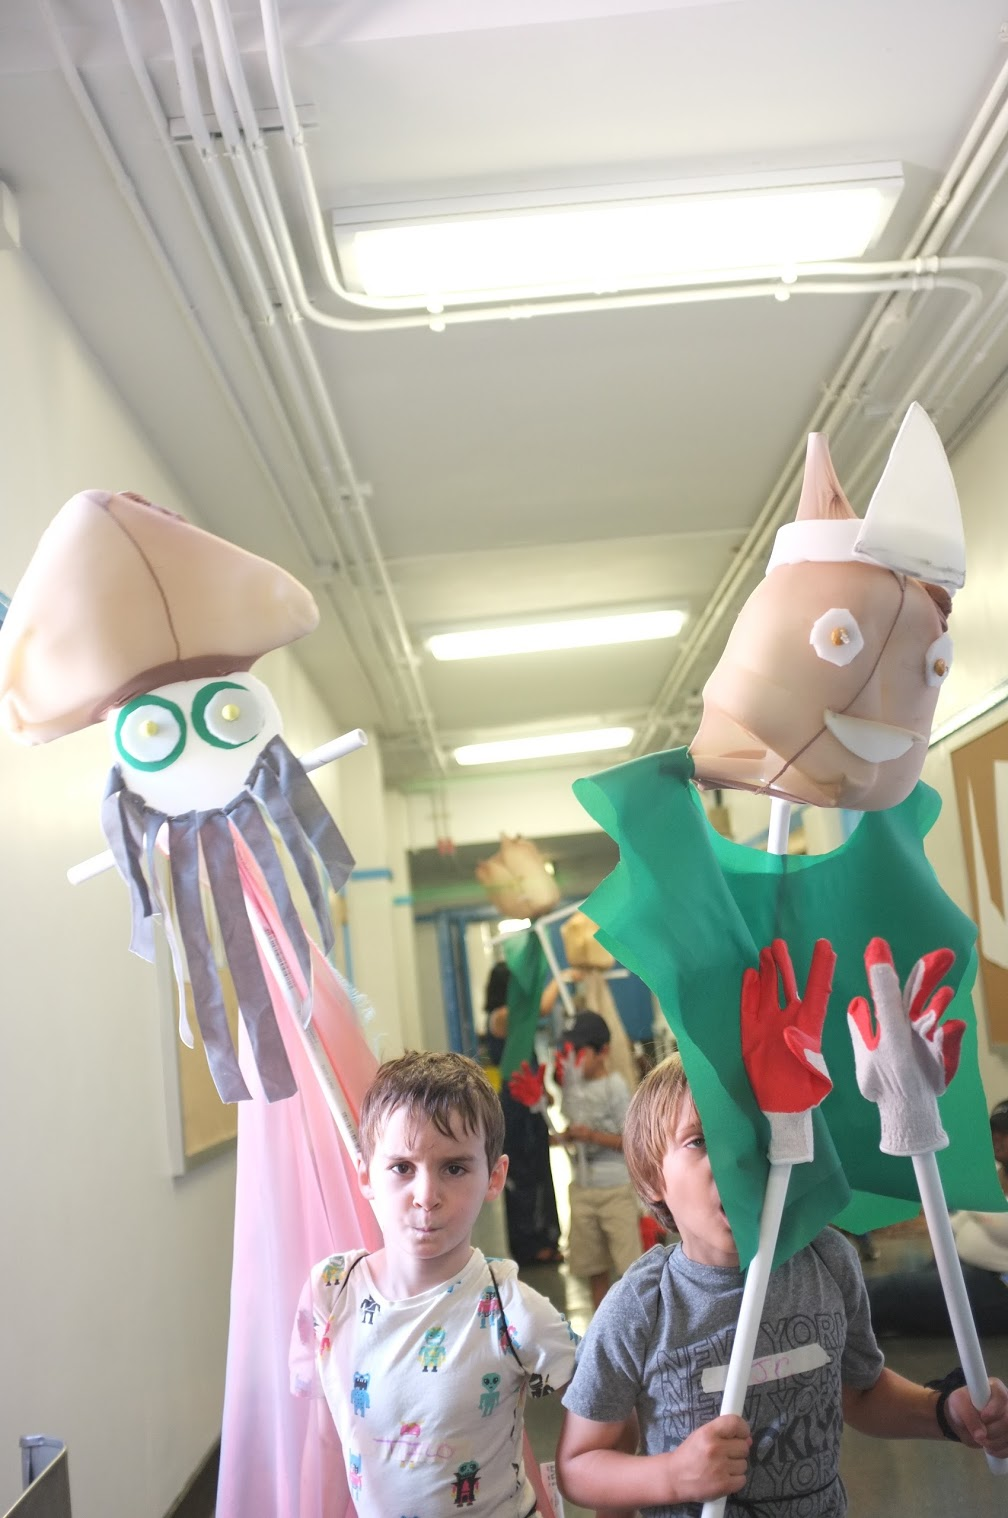 Giant wearable puppets